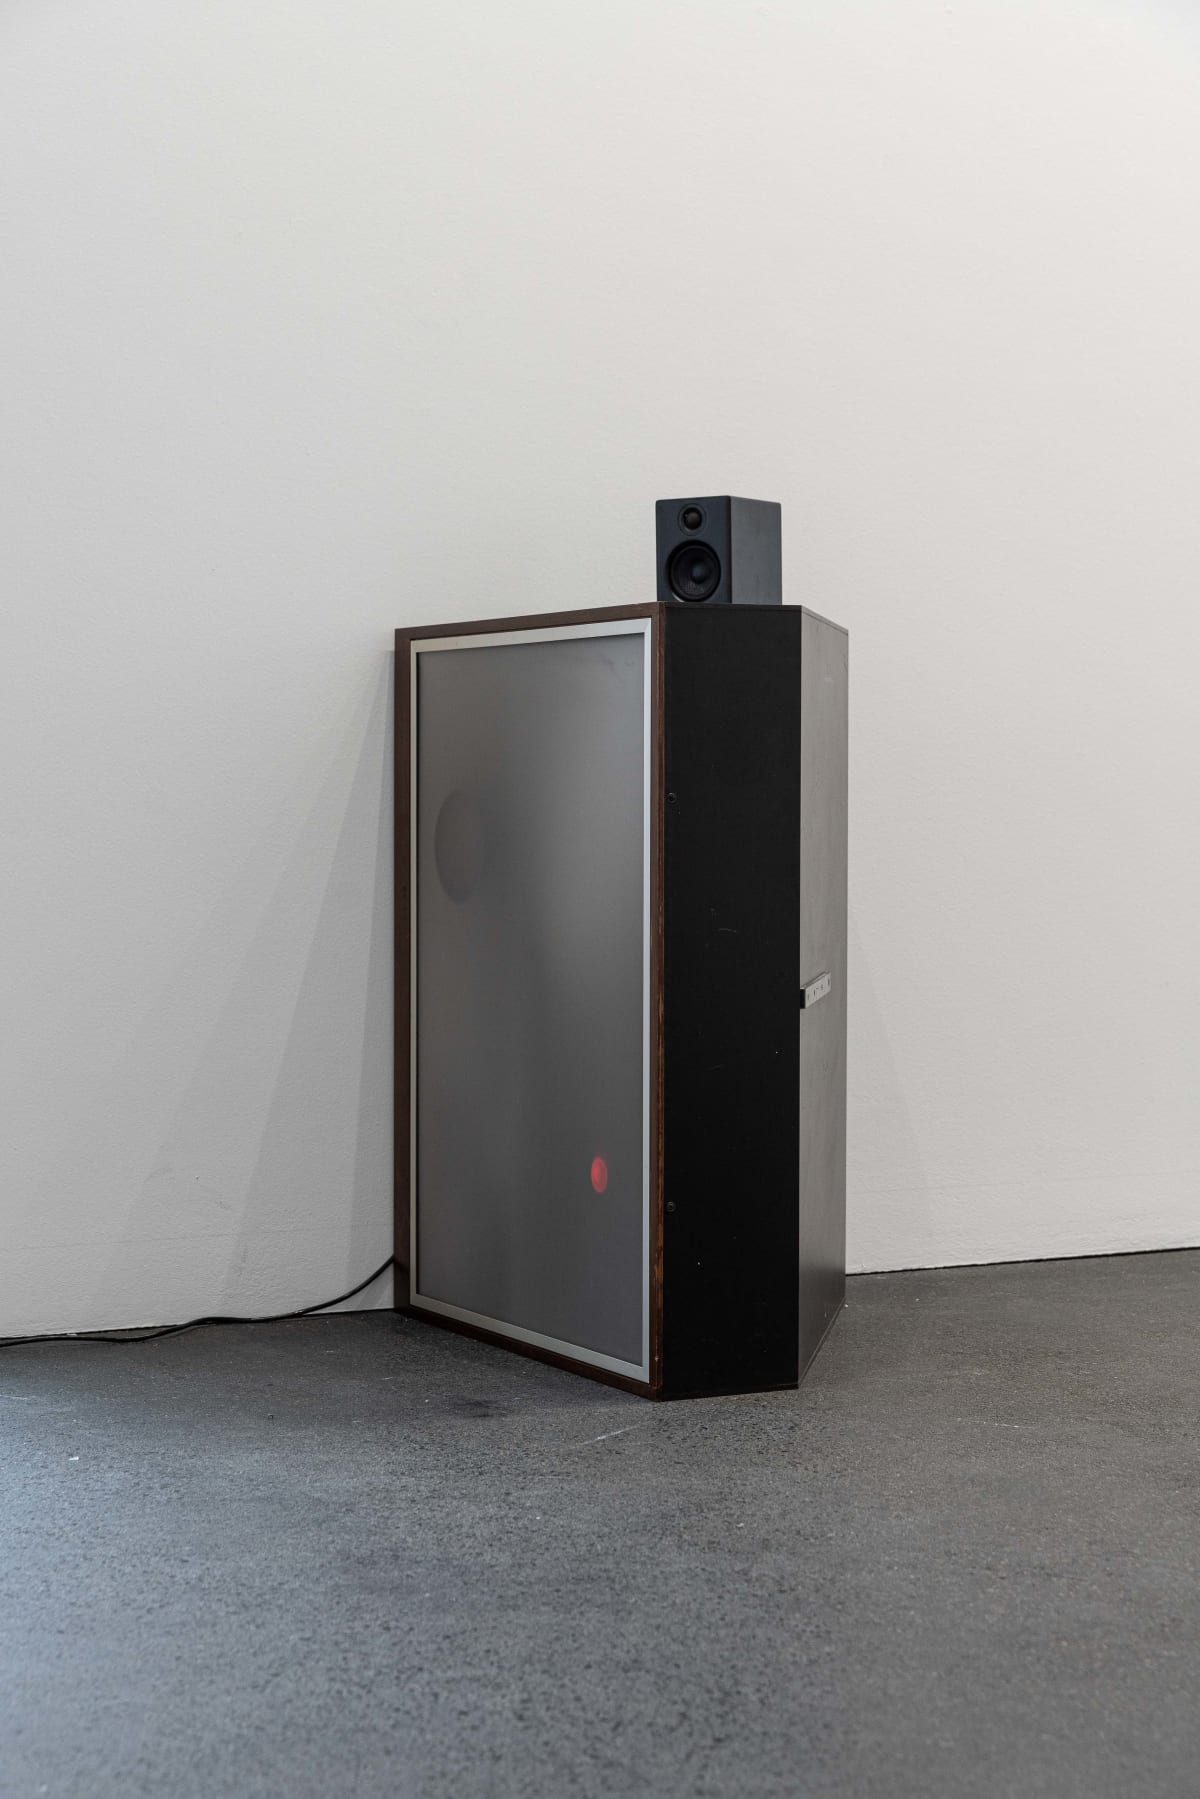 Haroon Mirza, Untitled Song #3, 2012